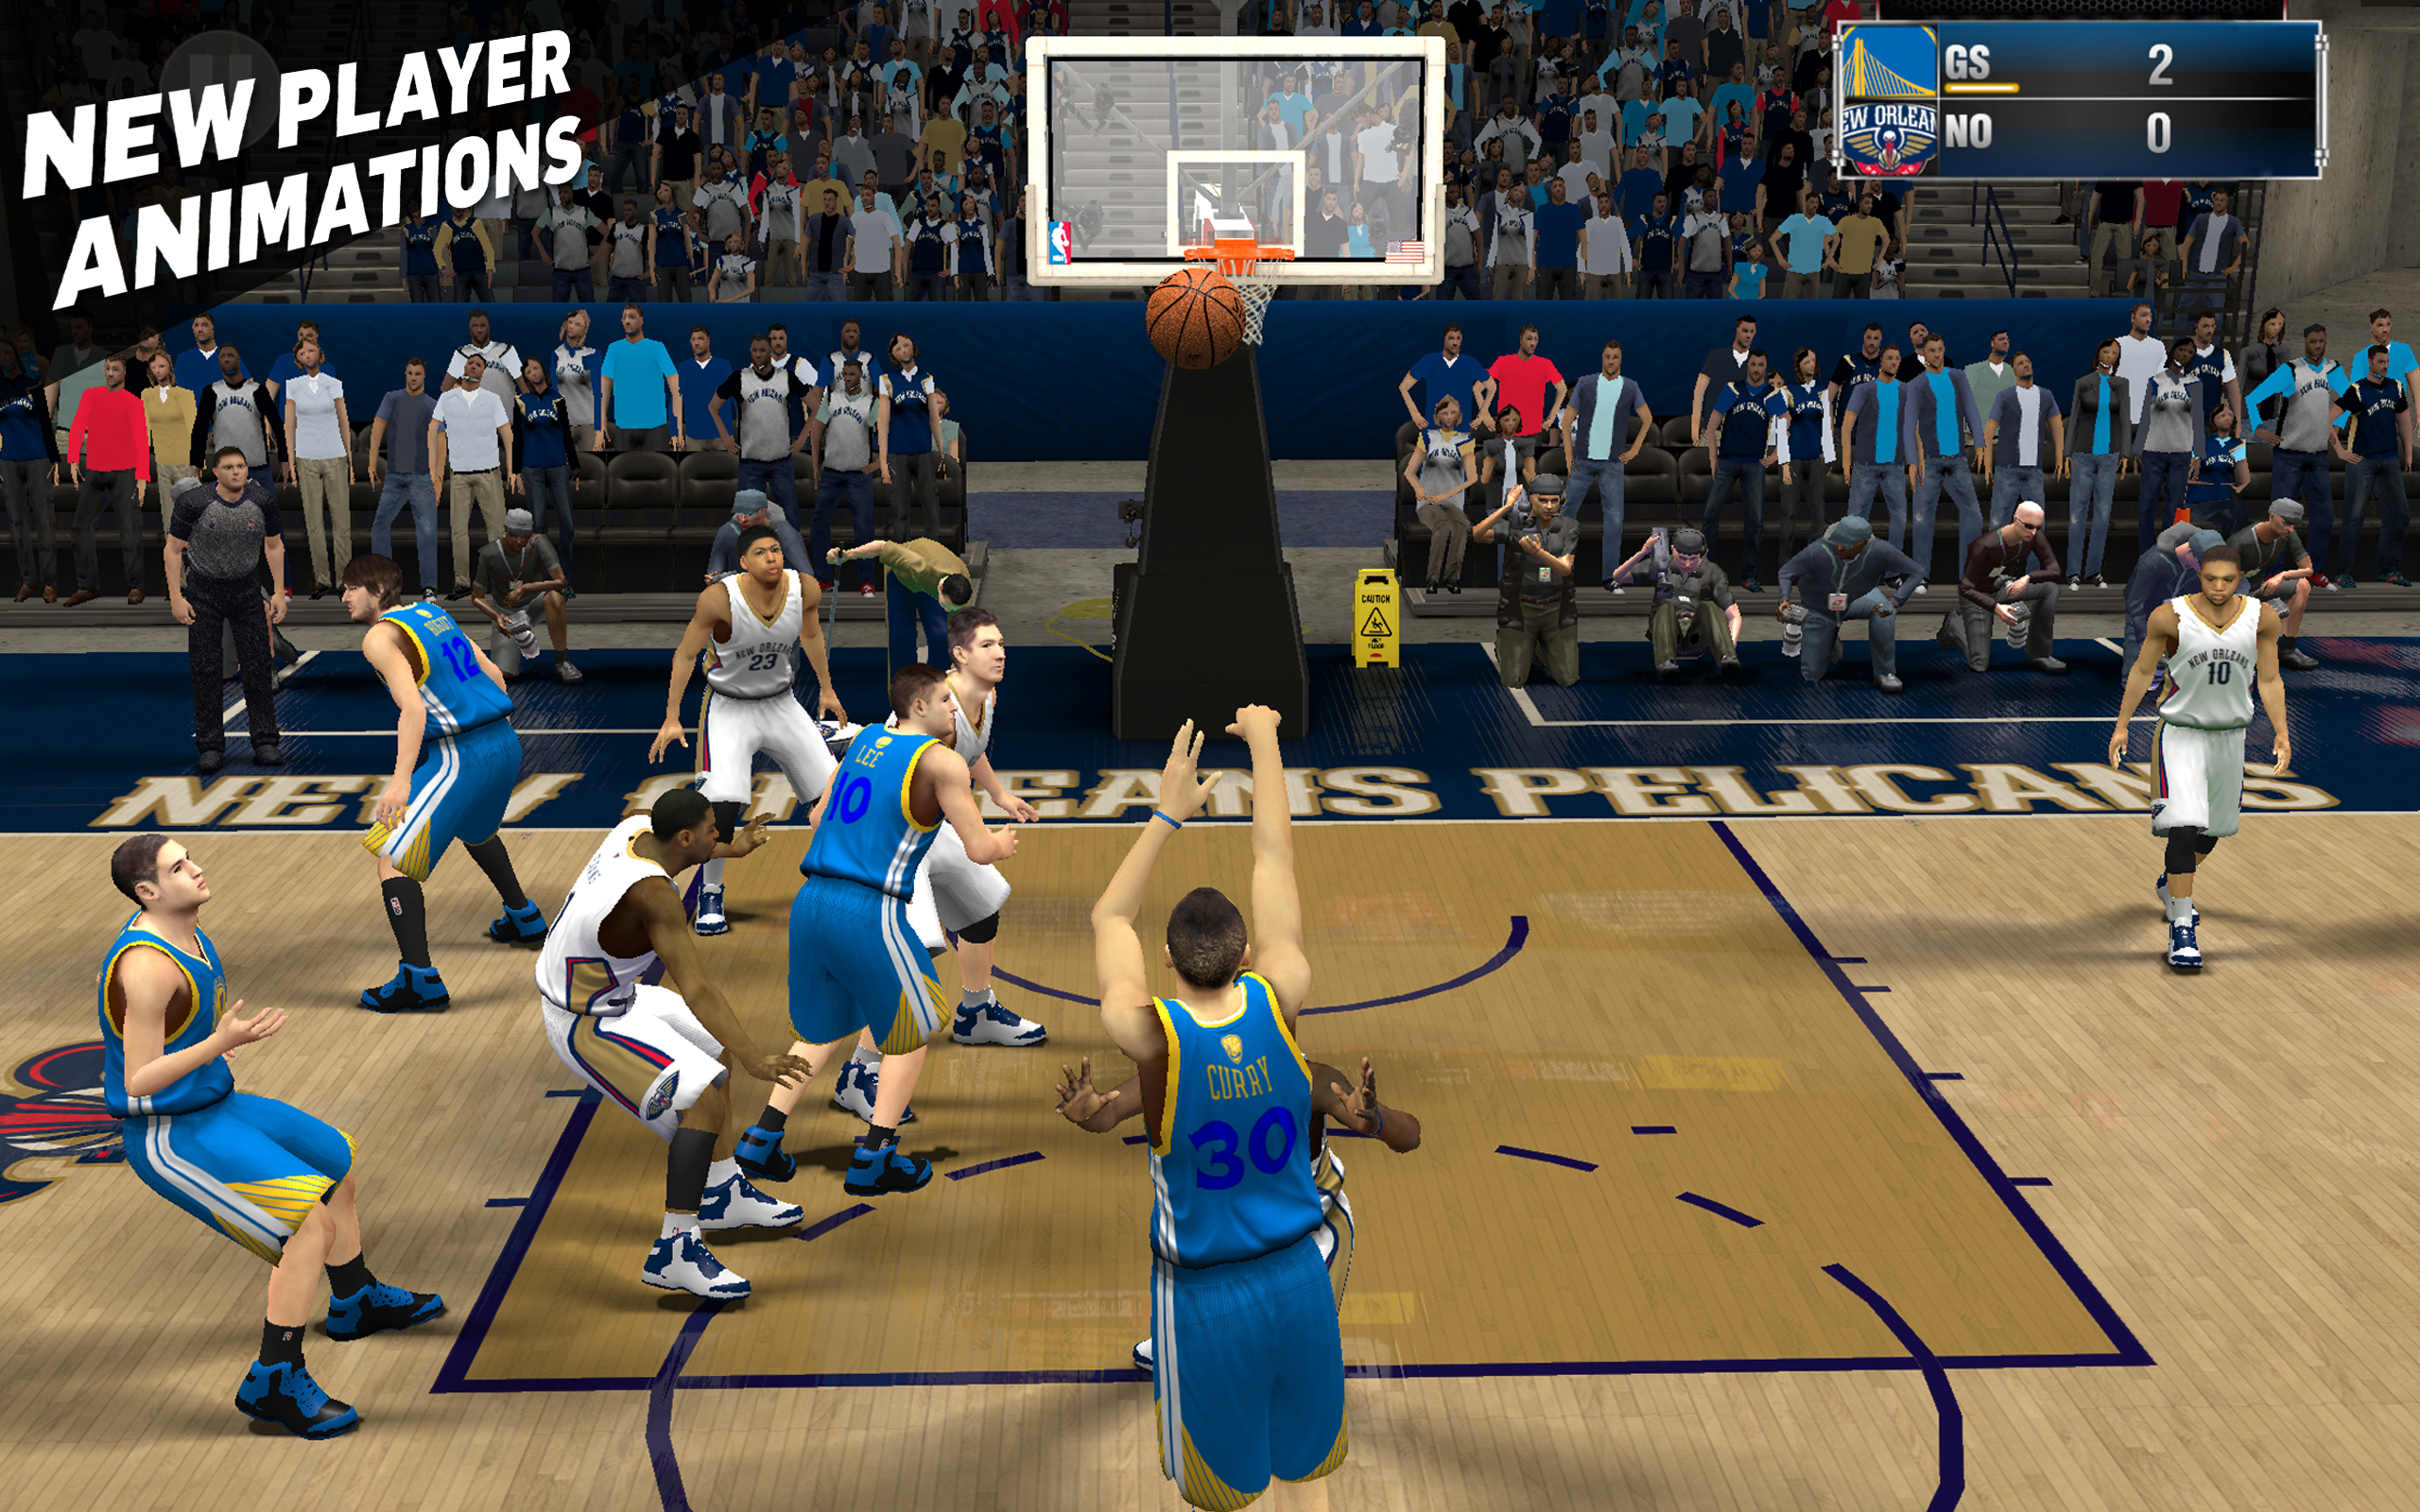 Nba 2k15 for android download apk free.